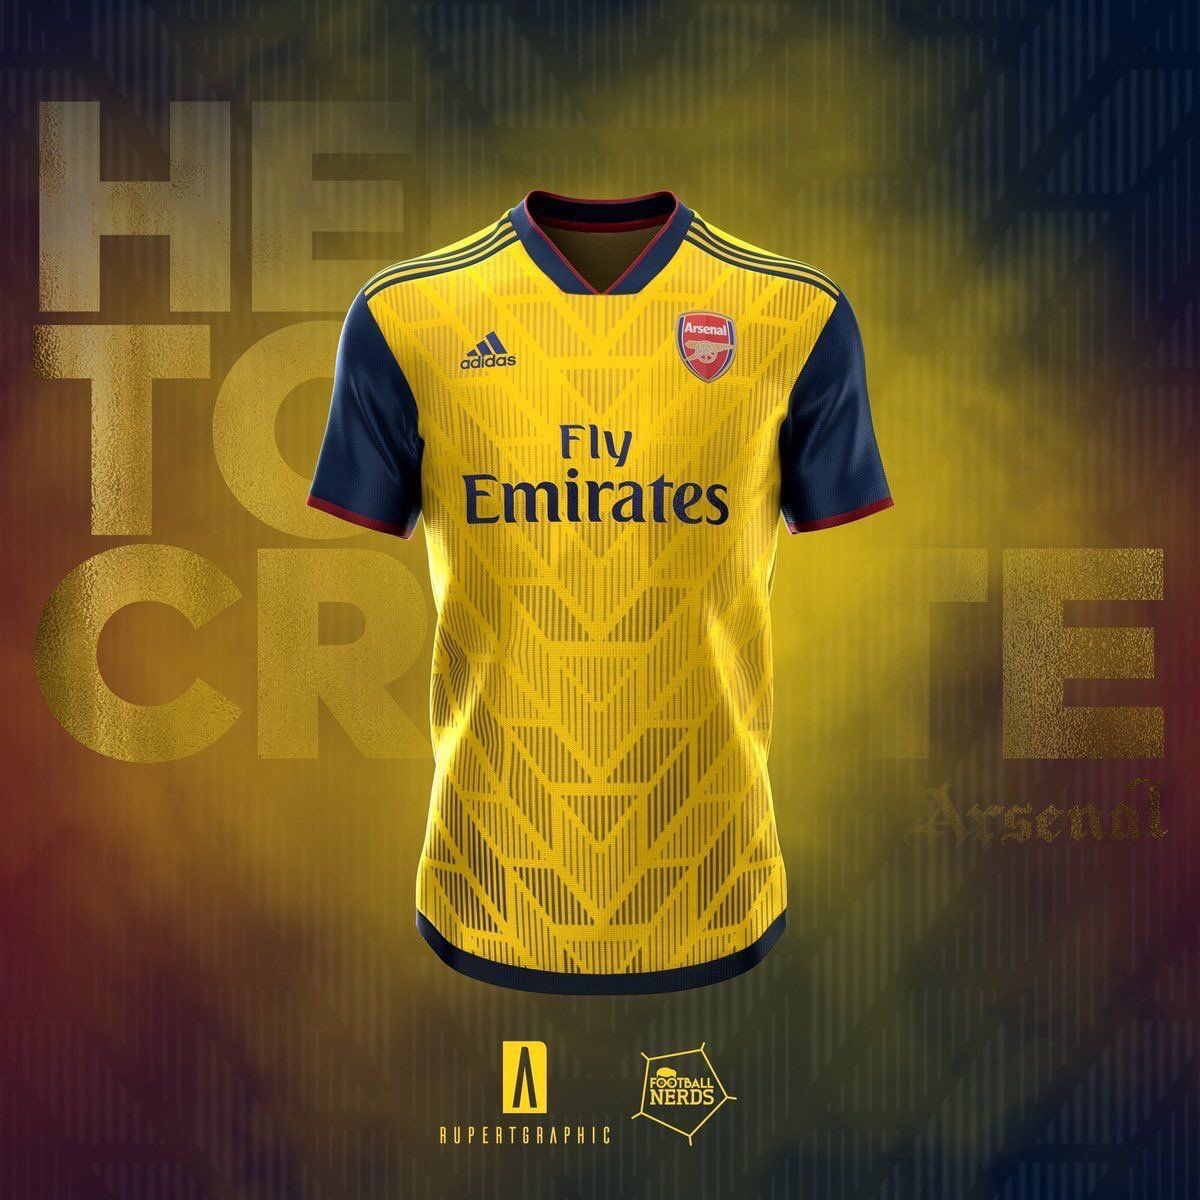 Download 35 Sport Psd Ideas Jersey Design Soccer Jersey Soccer Kits